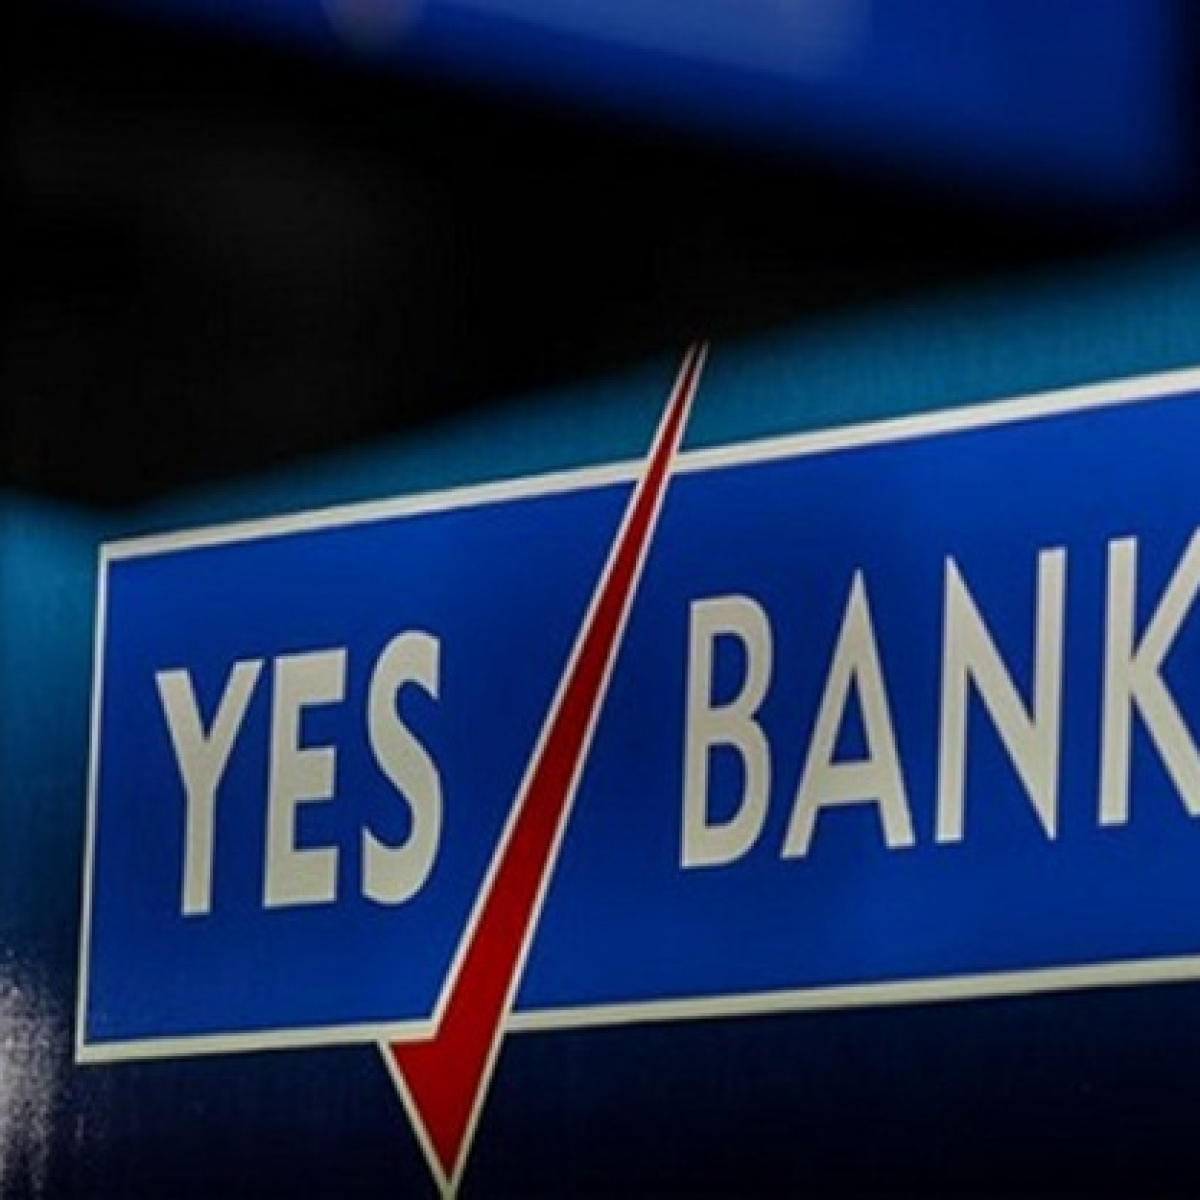 RBI imposes moratorium on Yes Bank; withdrawals capped at Rs 50,000